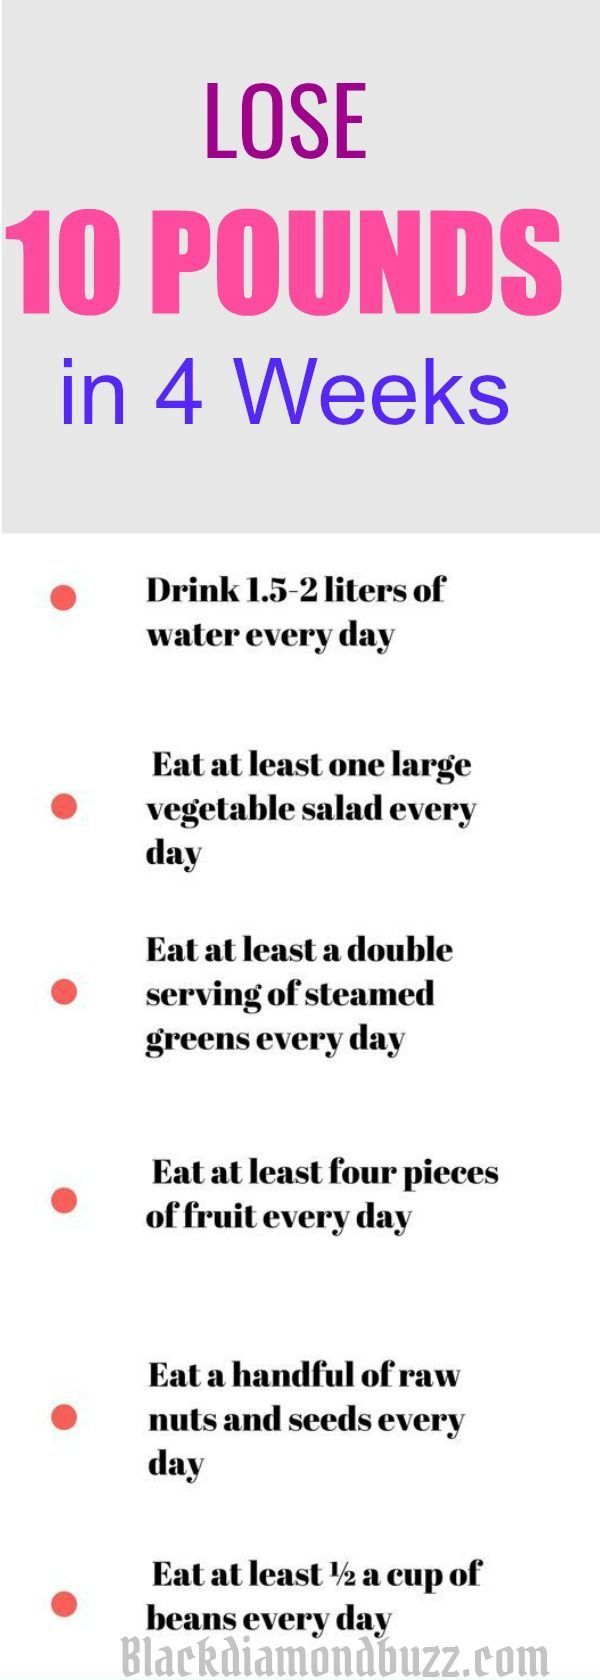 How to Lose 10 Pounds in 4weeks Naturally - Healthy Weight Loss Plan. Lose 10 po...